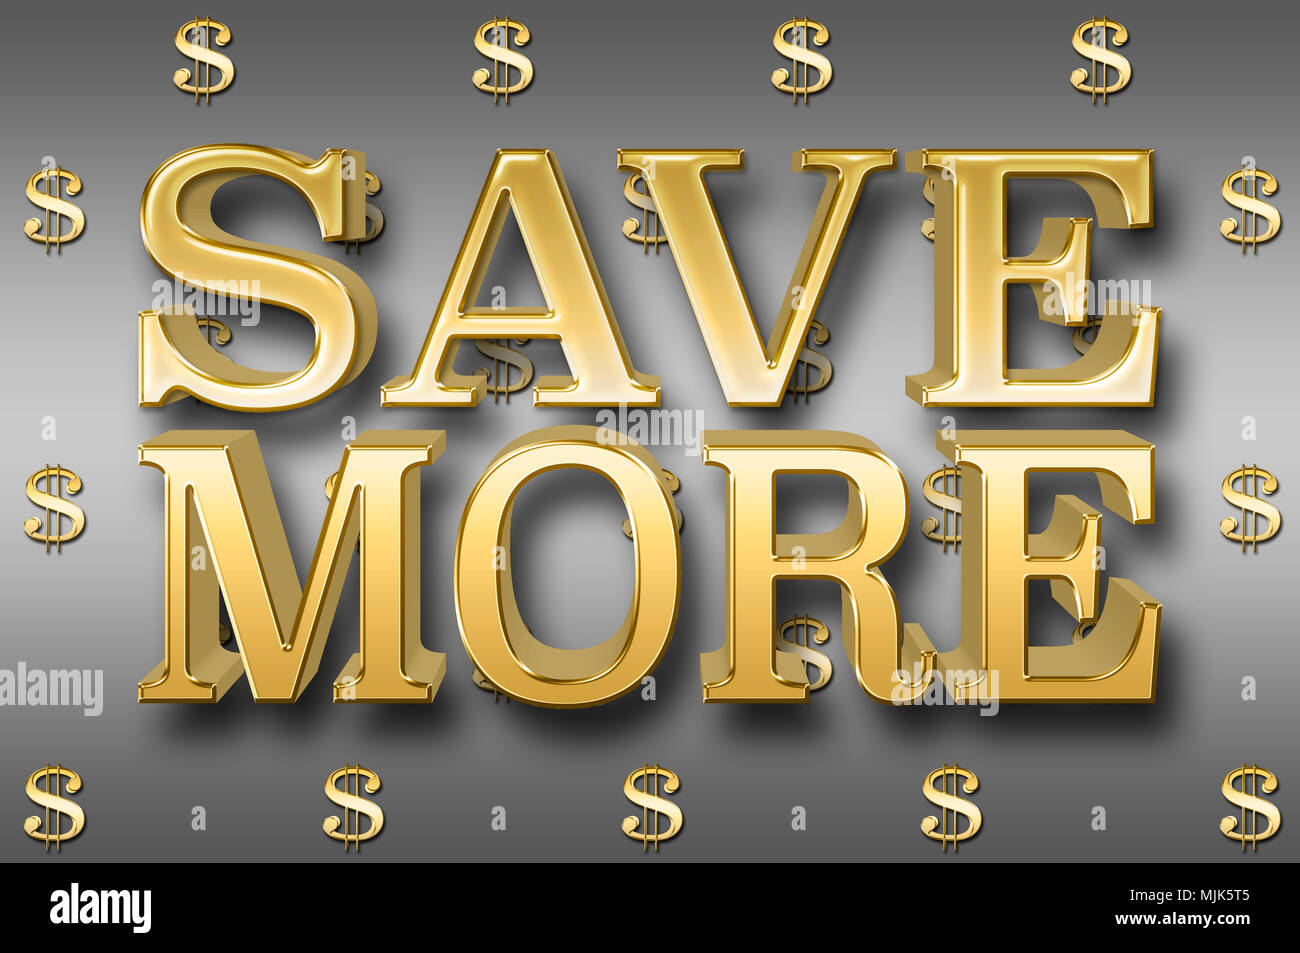 Stock Illustration - Large Metallic Text: Save More, 3D Illustration, Small Golden Dollar Currency Signs In the Steel Background. - Stock Image